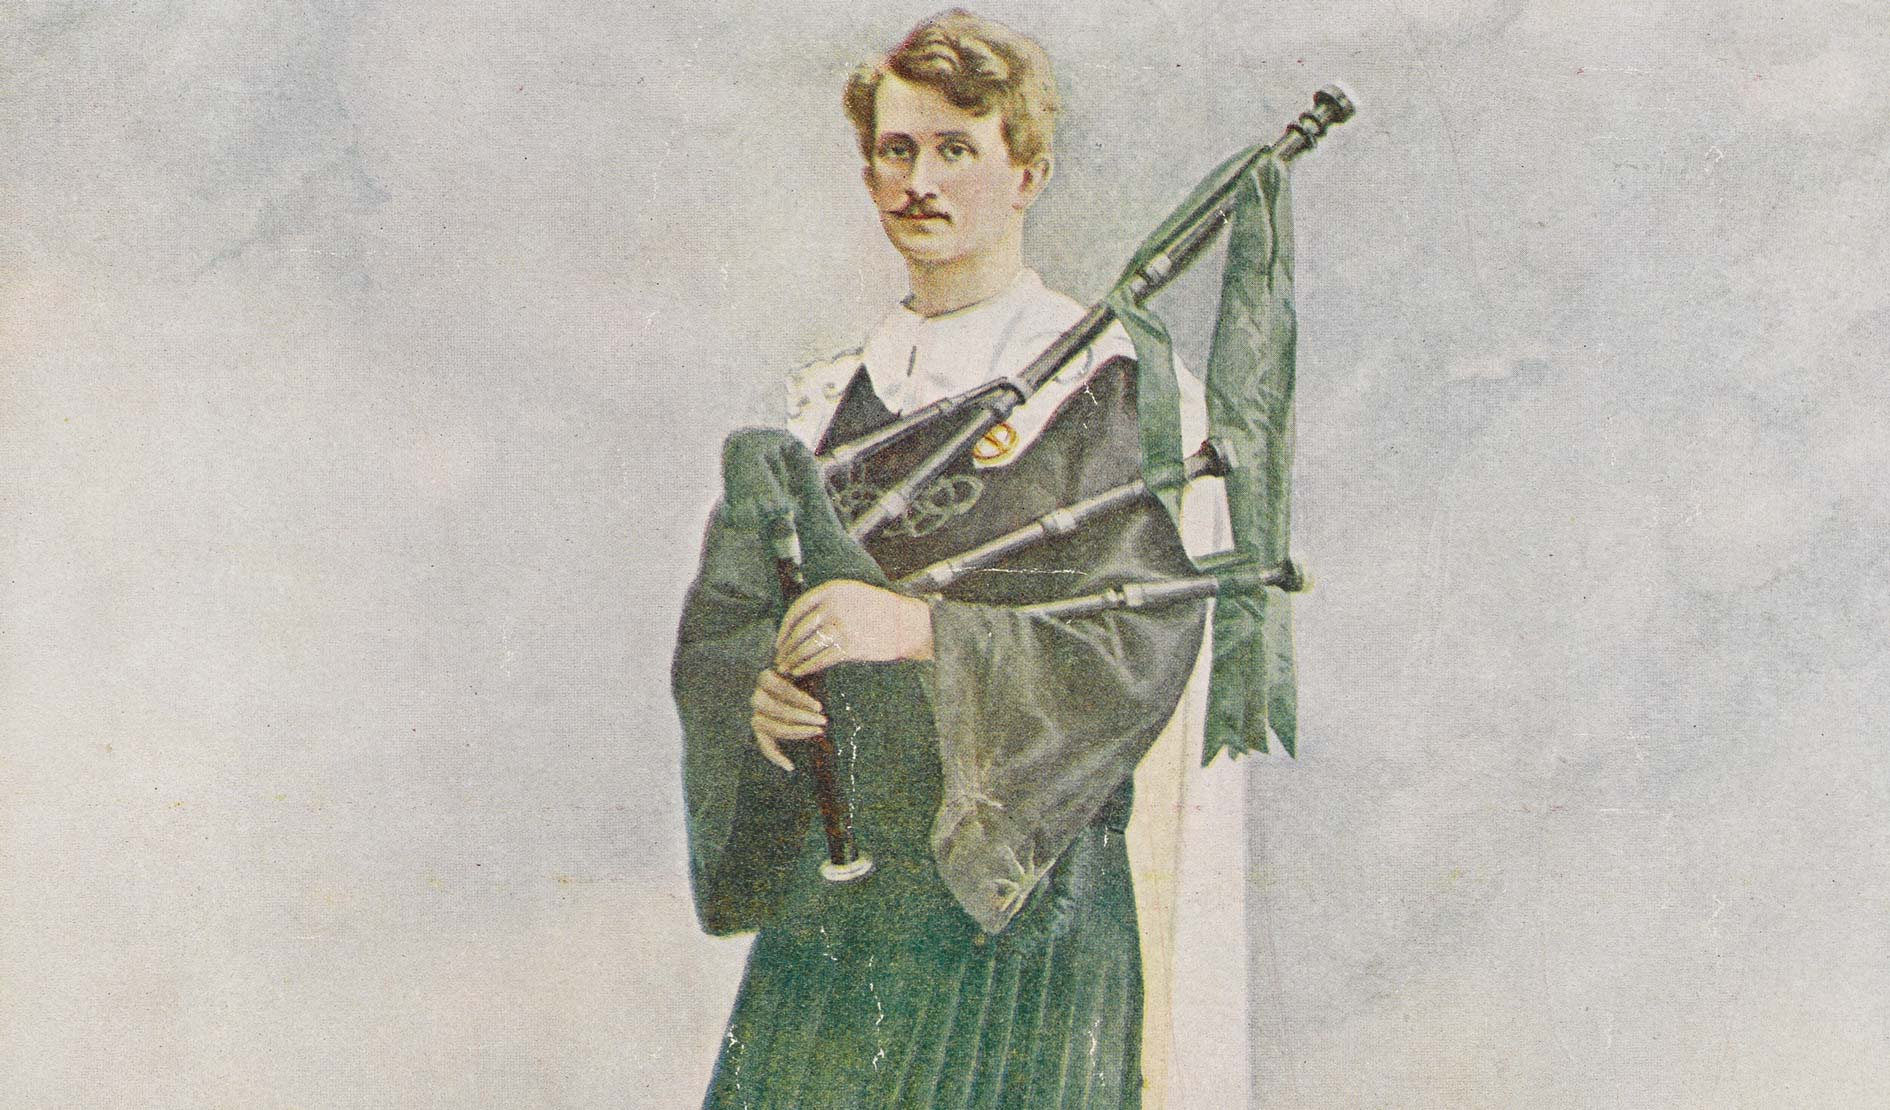 'Inhuman and dangerous': damning verdict of Thomas Ashe inquest